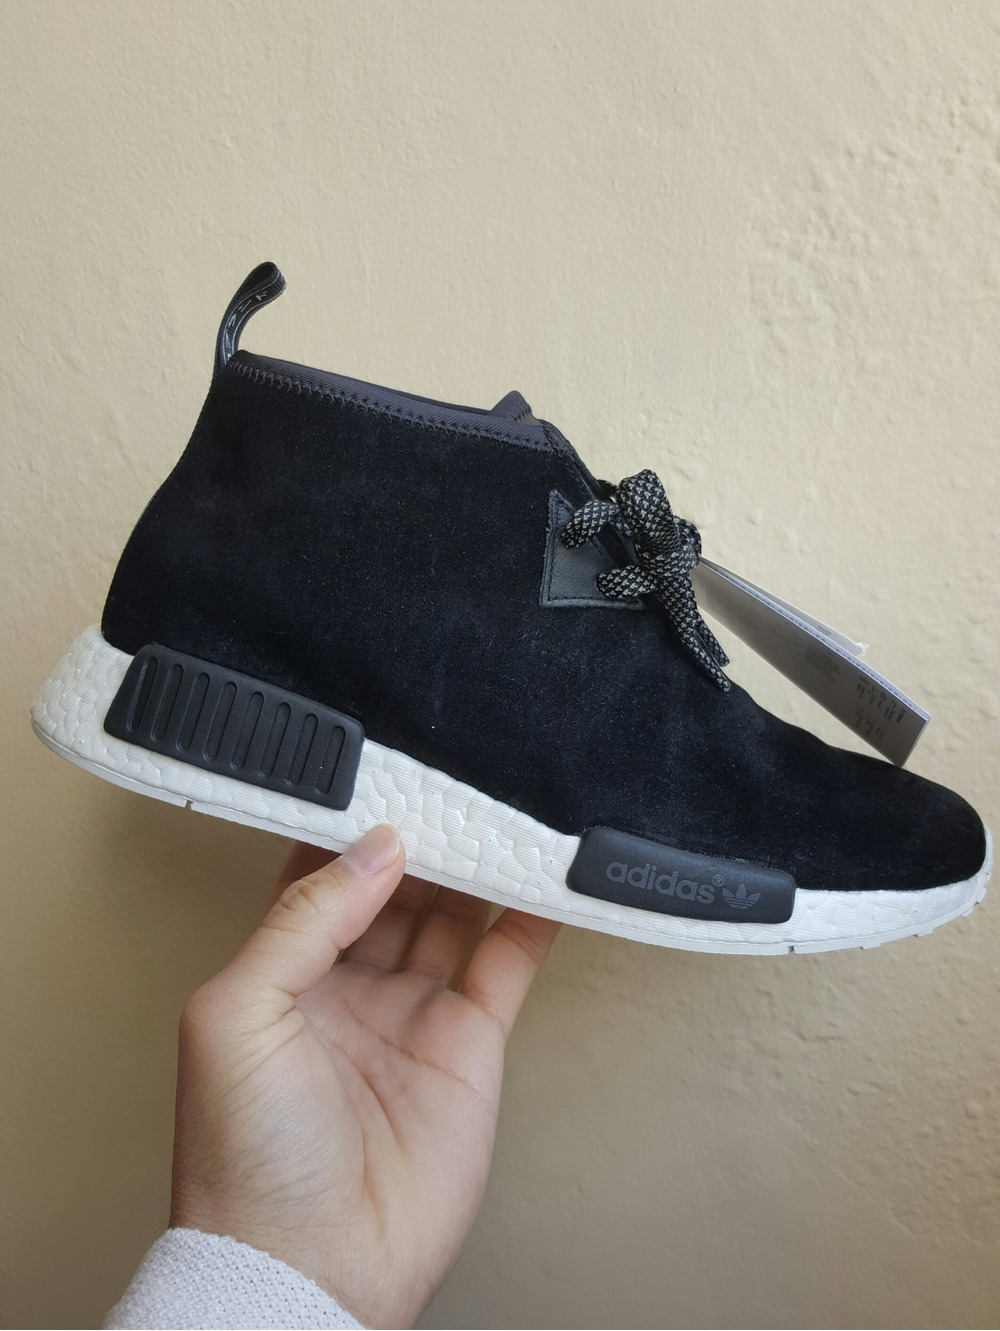 Adidas NMD C1 Chukka black, US 11, EU 45 1/3, in hand, ready to